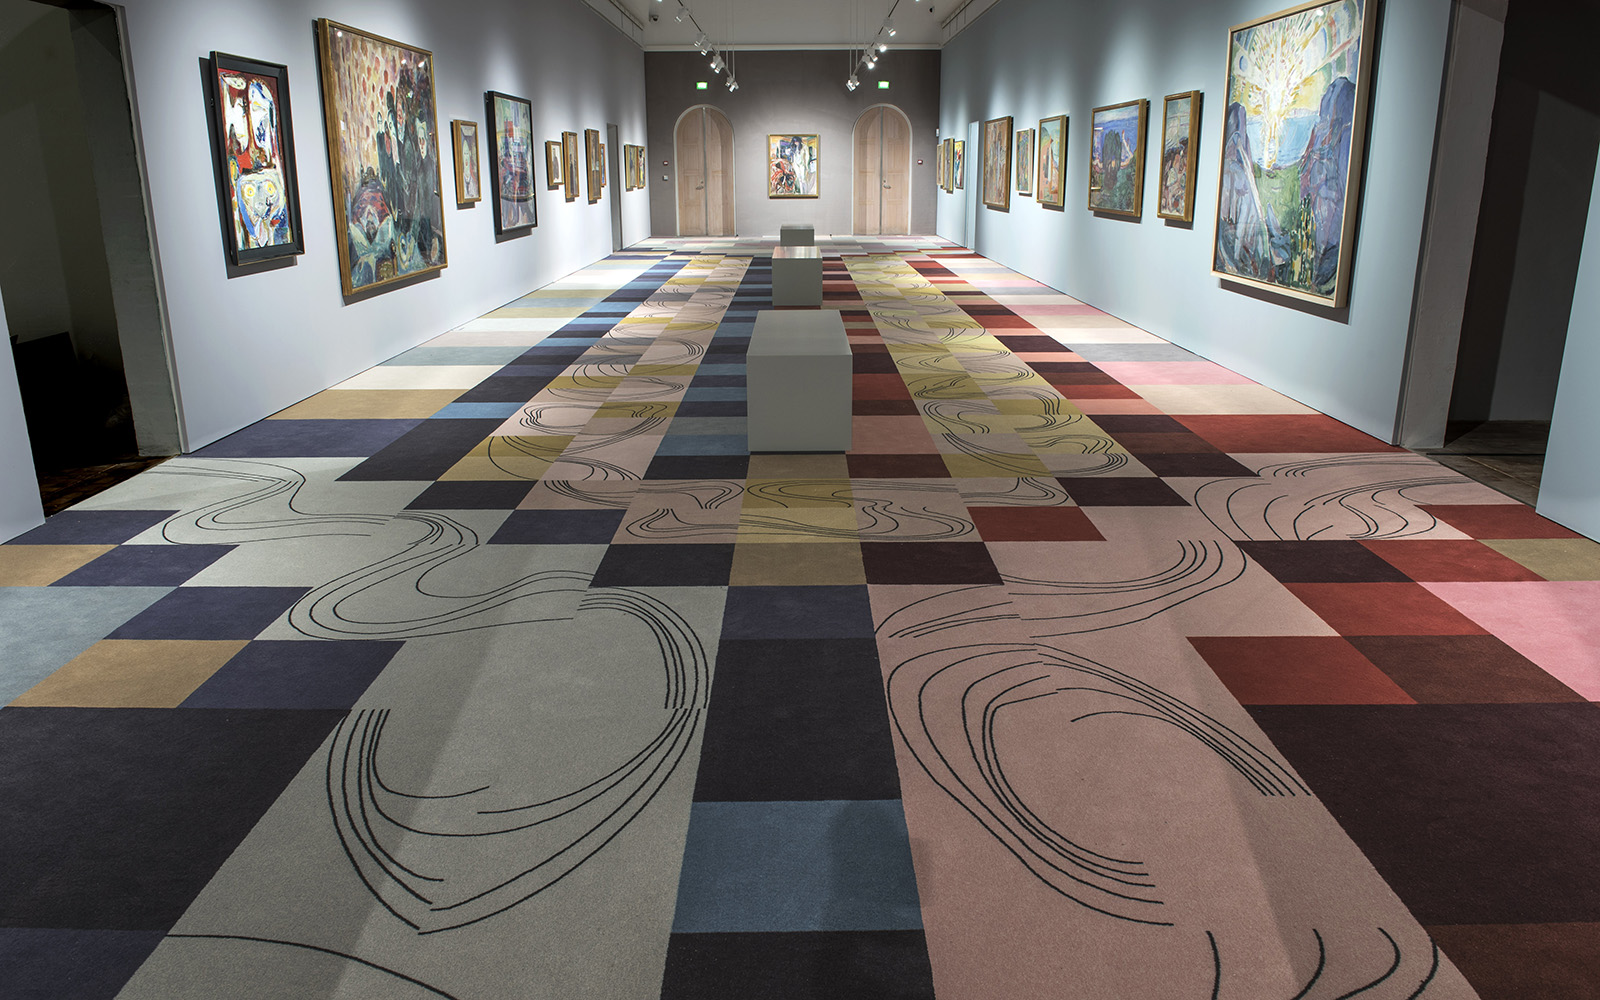 Multi coloured pattern carpet at the danish art museum Jorn in Silkeborg